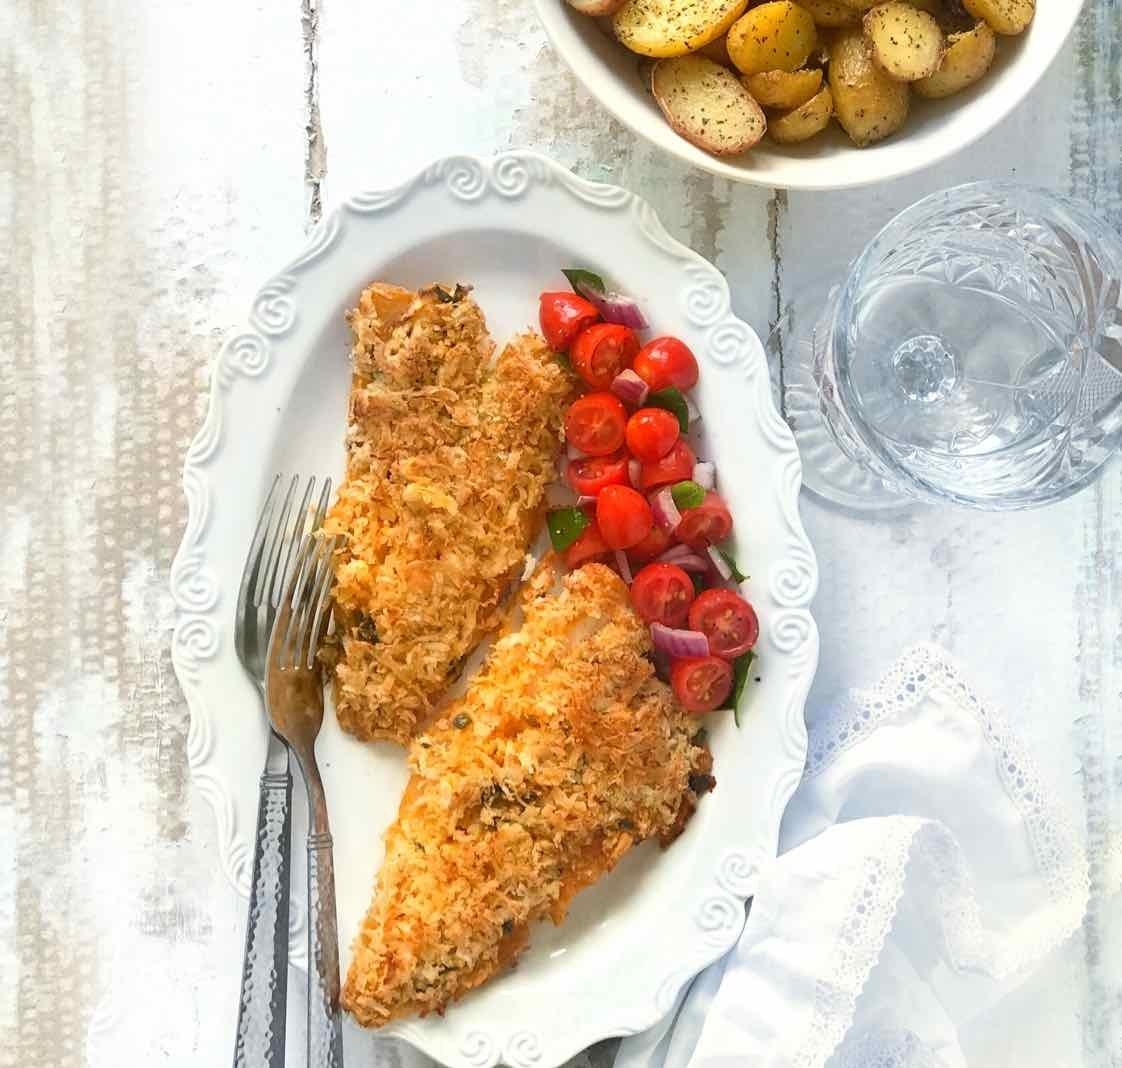 How to make Coconut Crusted Fish (Cod)